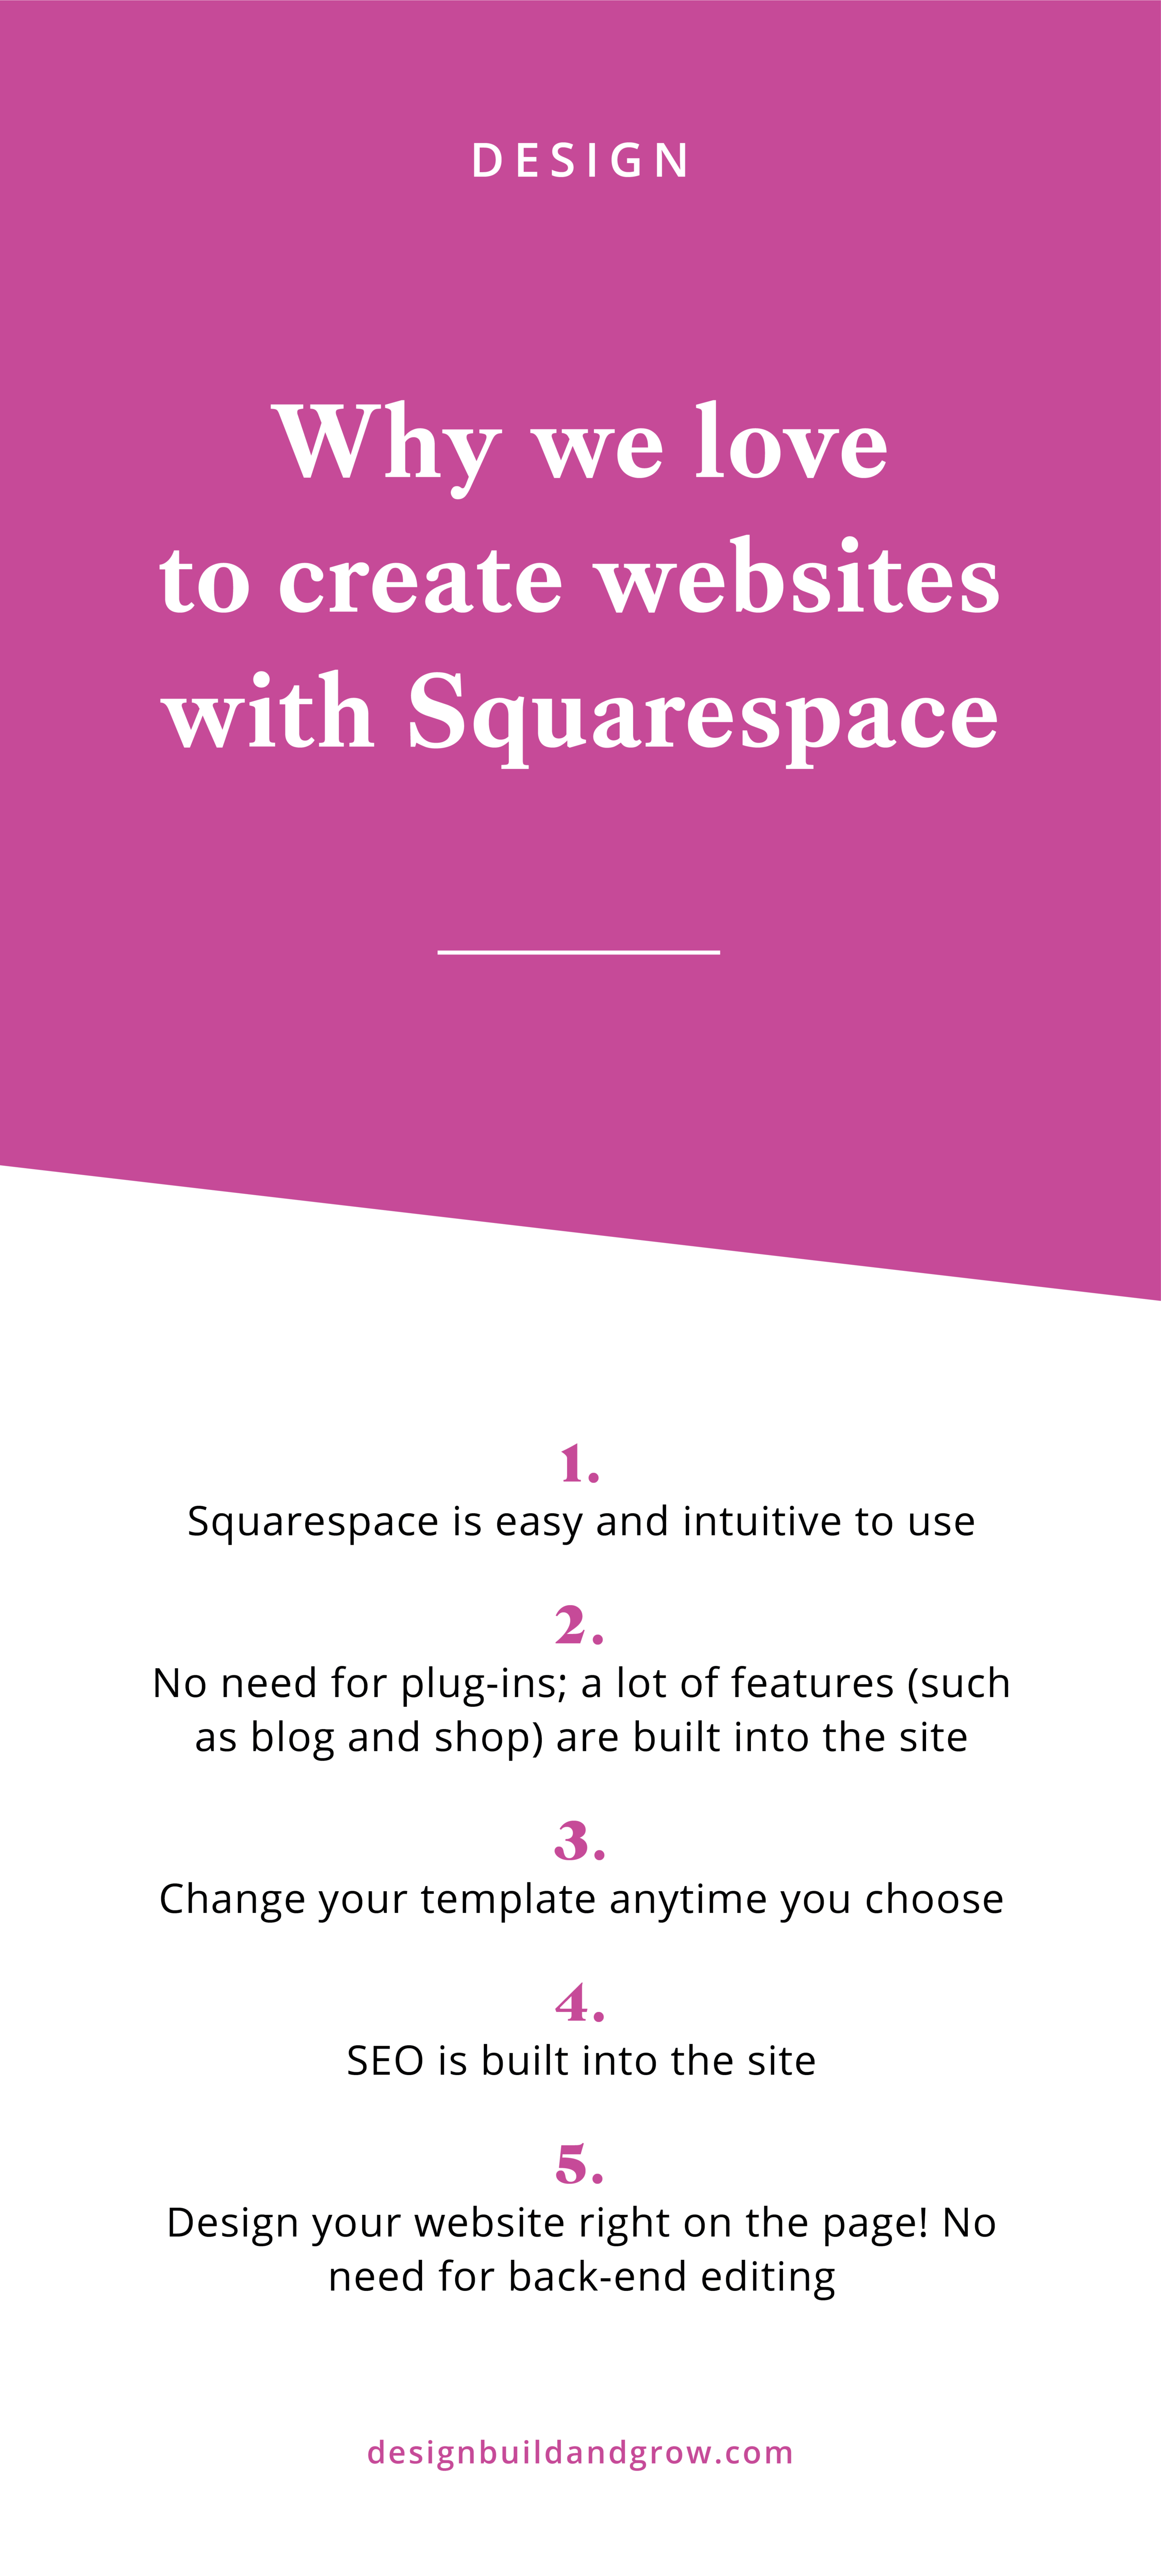 Why We Love Designing Websites with Squarespace